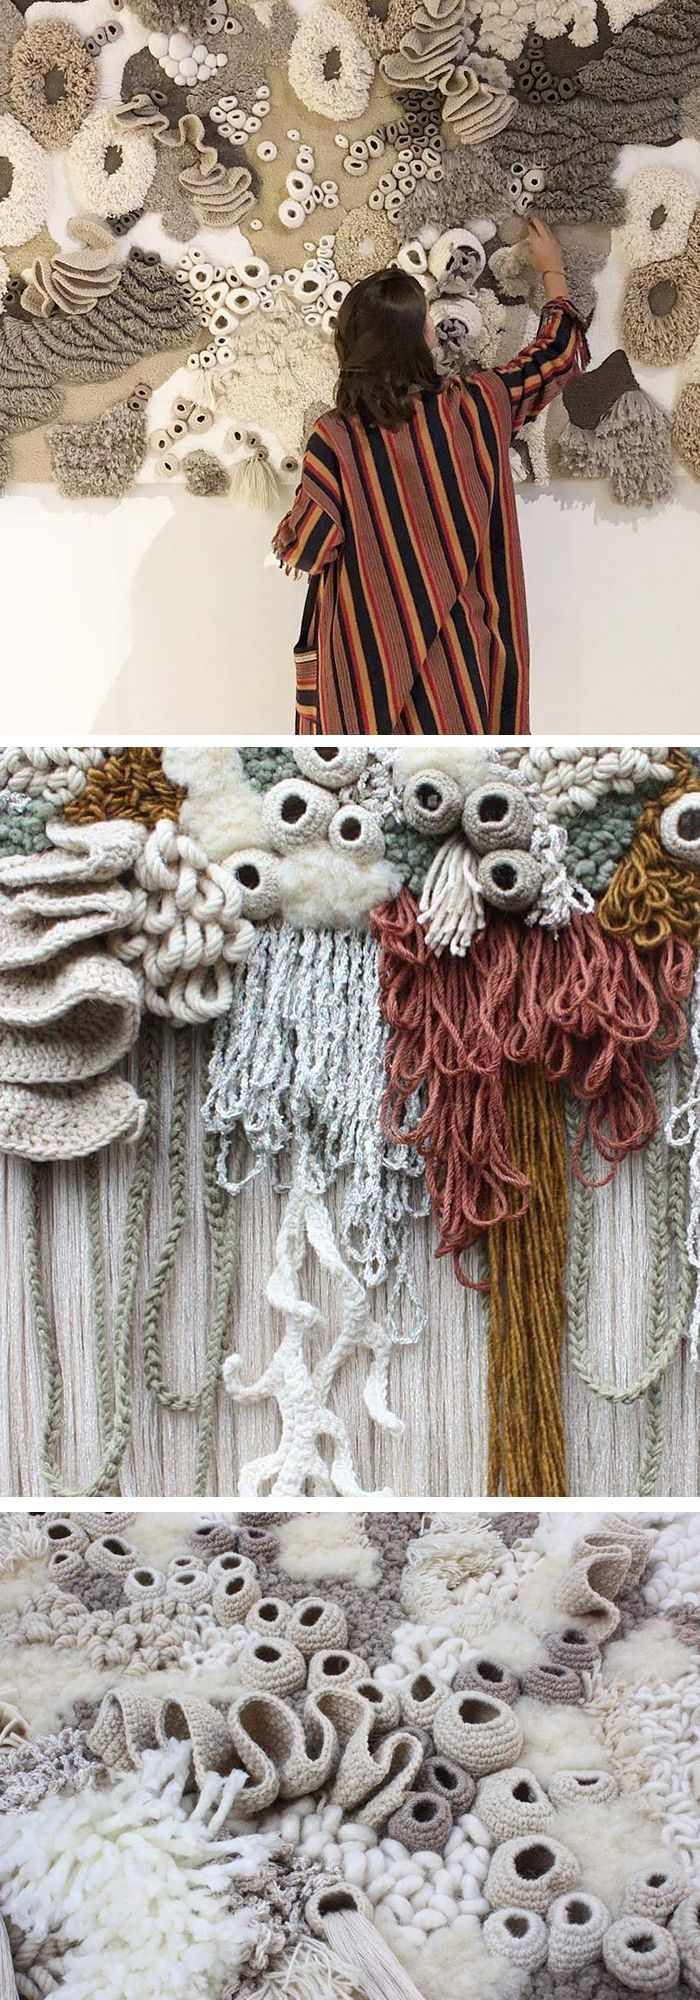 Artist Vanessa Barragão creates 3D textile art inspired by the Earth's coral reef ecosystem. #fiberart #crochetart